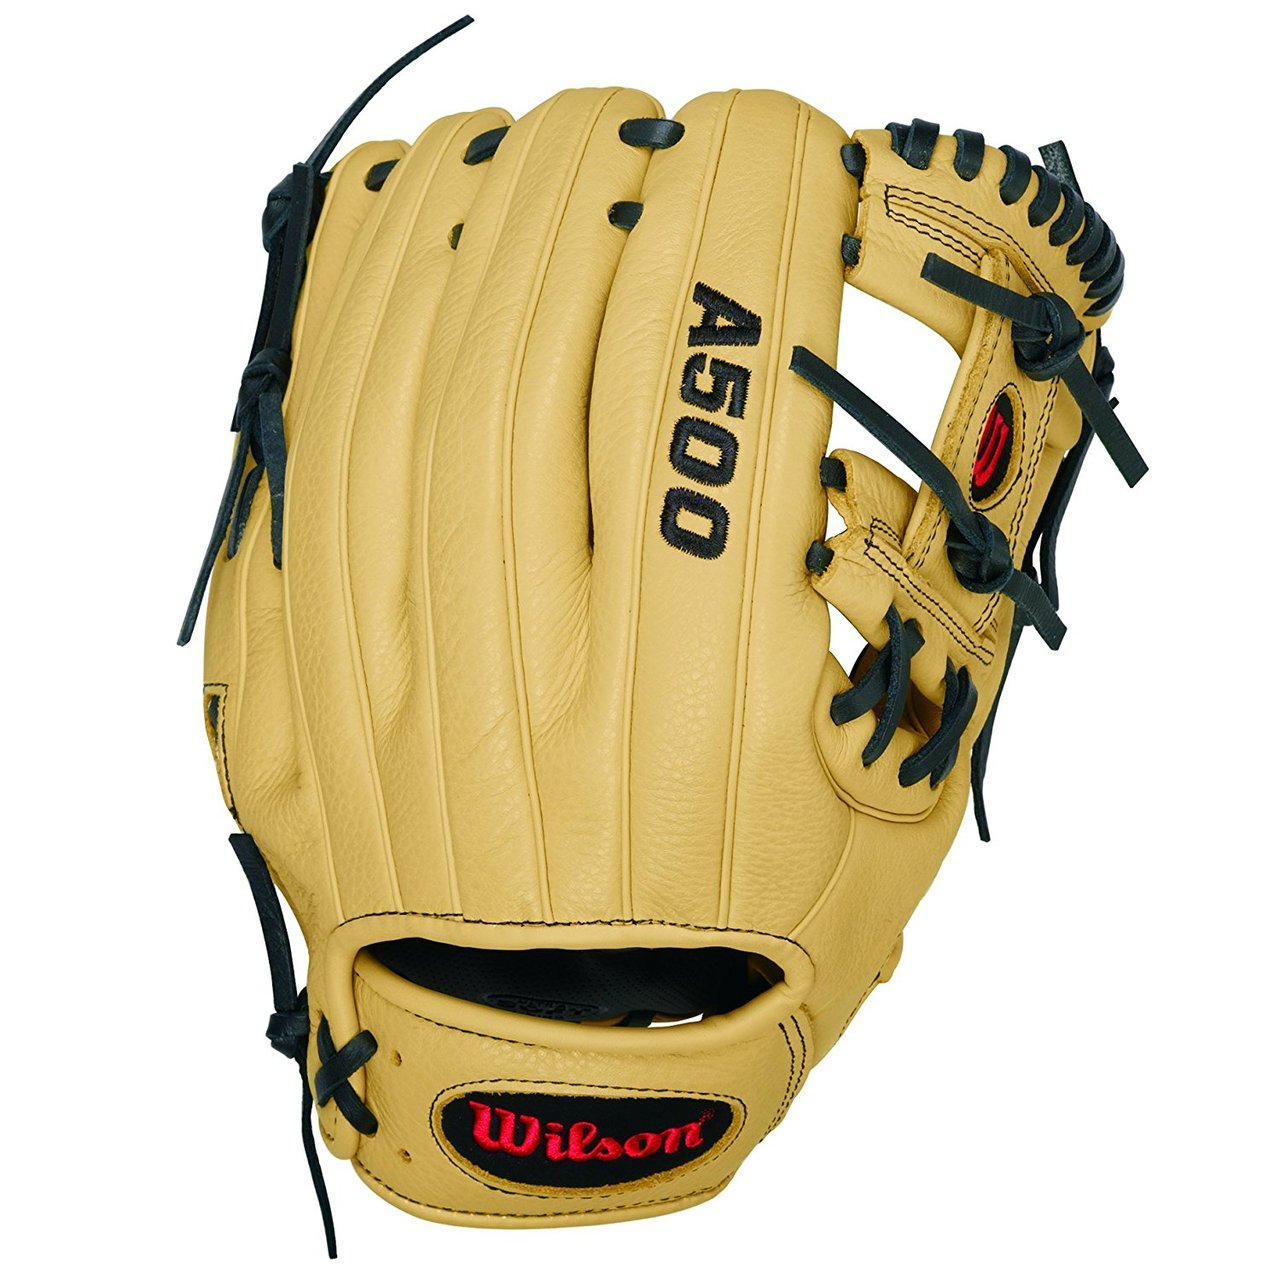 A500 - 11 Wilson A500 1786 Baseball GloveA500 1786 11 Baseball Glove-Right Hand Throw A500 1786 11 Baseball Glove-Left Hand Throw WTA05RB1611WTA05LB1611Designed for youth players, the 11 A500 baseball glove model is a replica of the the blonde A2000 1786. It features an H-web, making it a great glove for utility players.The A500 is the lightest all-leather glove on the market. The glove's top-grain leather provides a flexible, ready-to-play feel that performs without the extra weight of other leather gloves. 11 H-Web Replica of A2000 1786Game-ready top grain leather shell provides all the feel without the wieght2x Palm Construction to reinforce the pocketDual WeltingTM for a durable pocketThe lighest all-leather glove on the marketUtilityBoth11 h-web Game Ready Top Grain LeatherA500 RC22 Showtime 11.5 Pedroia Fit Bandit 1786A1074 Wilson Players Video